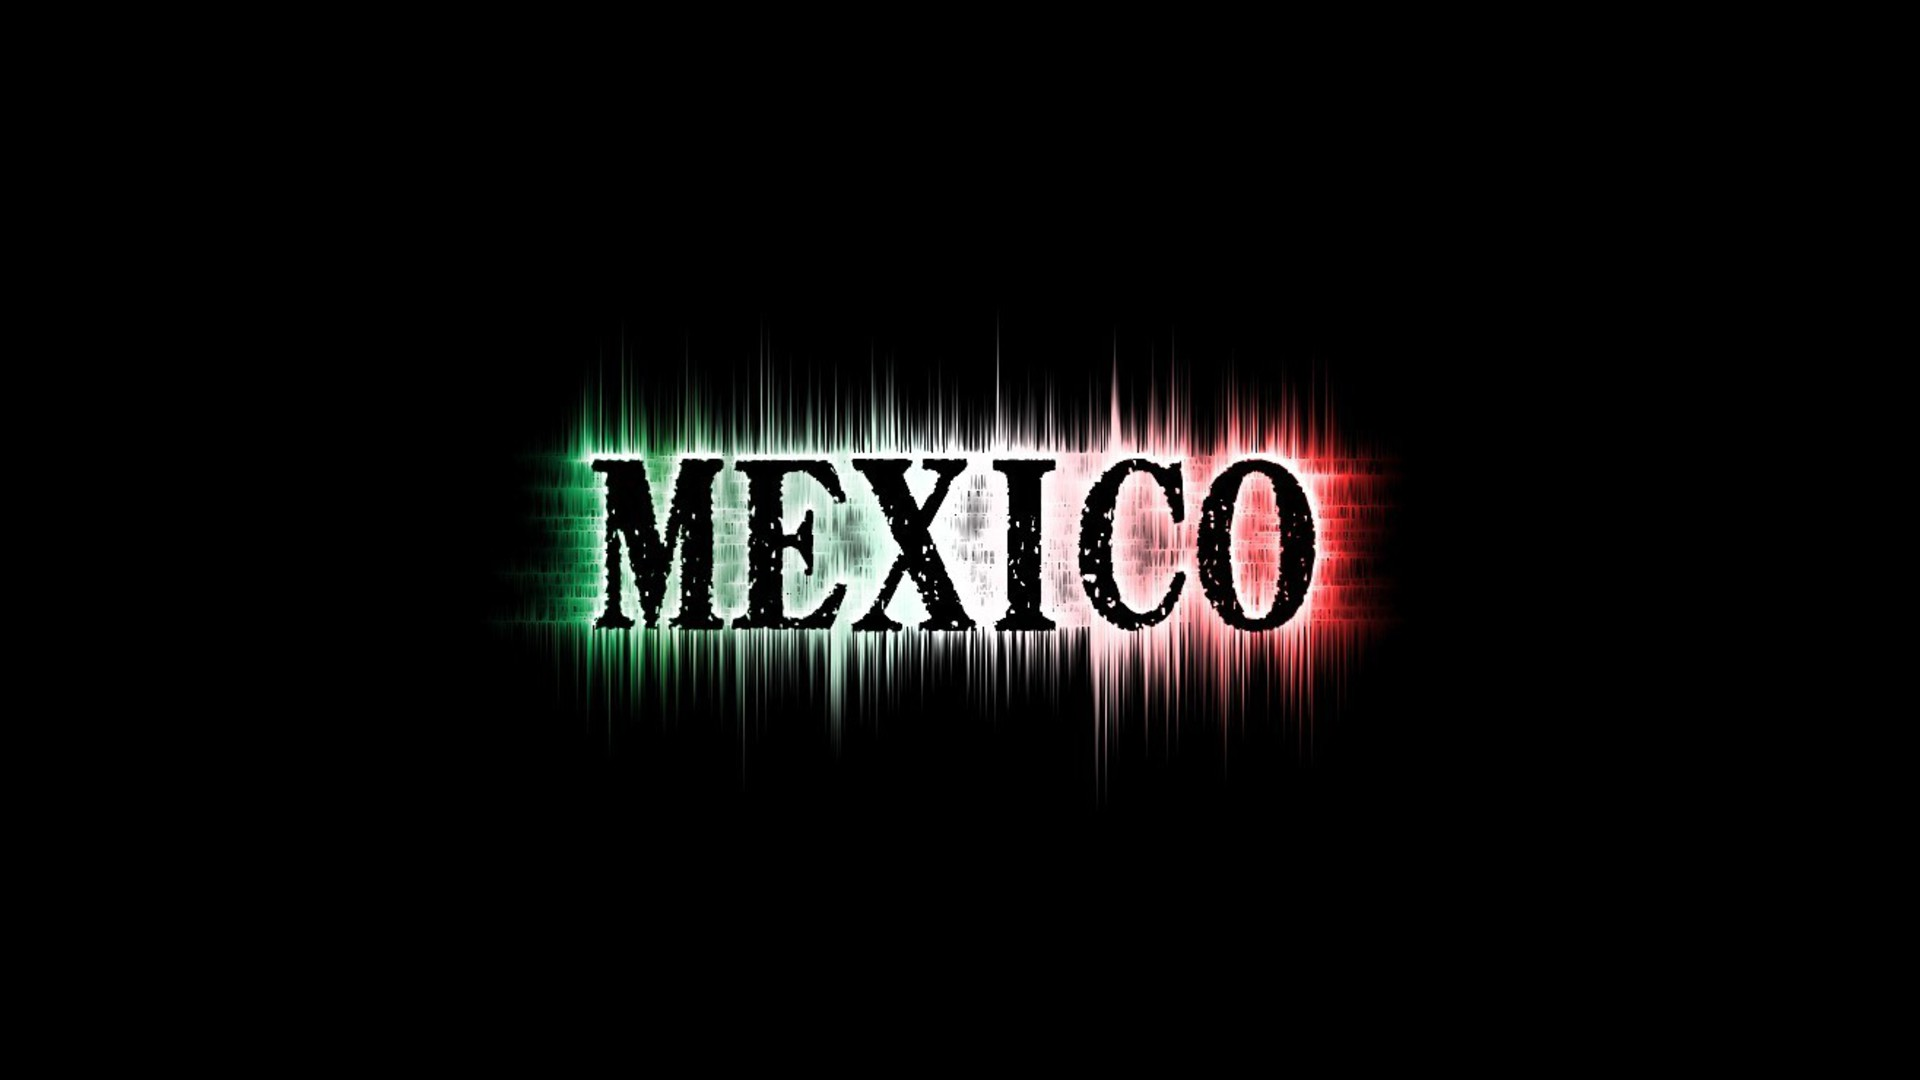 mexico wallpapers hd